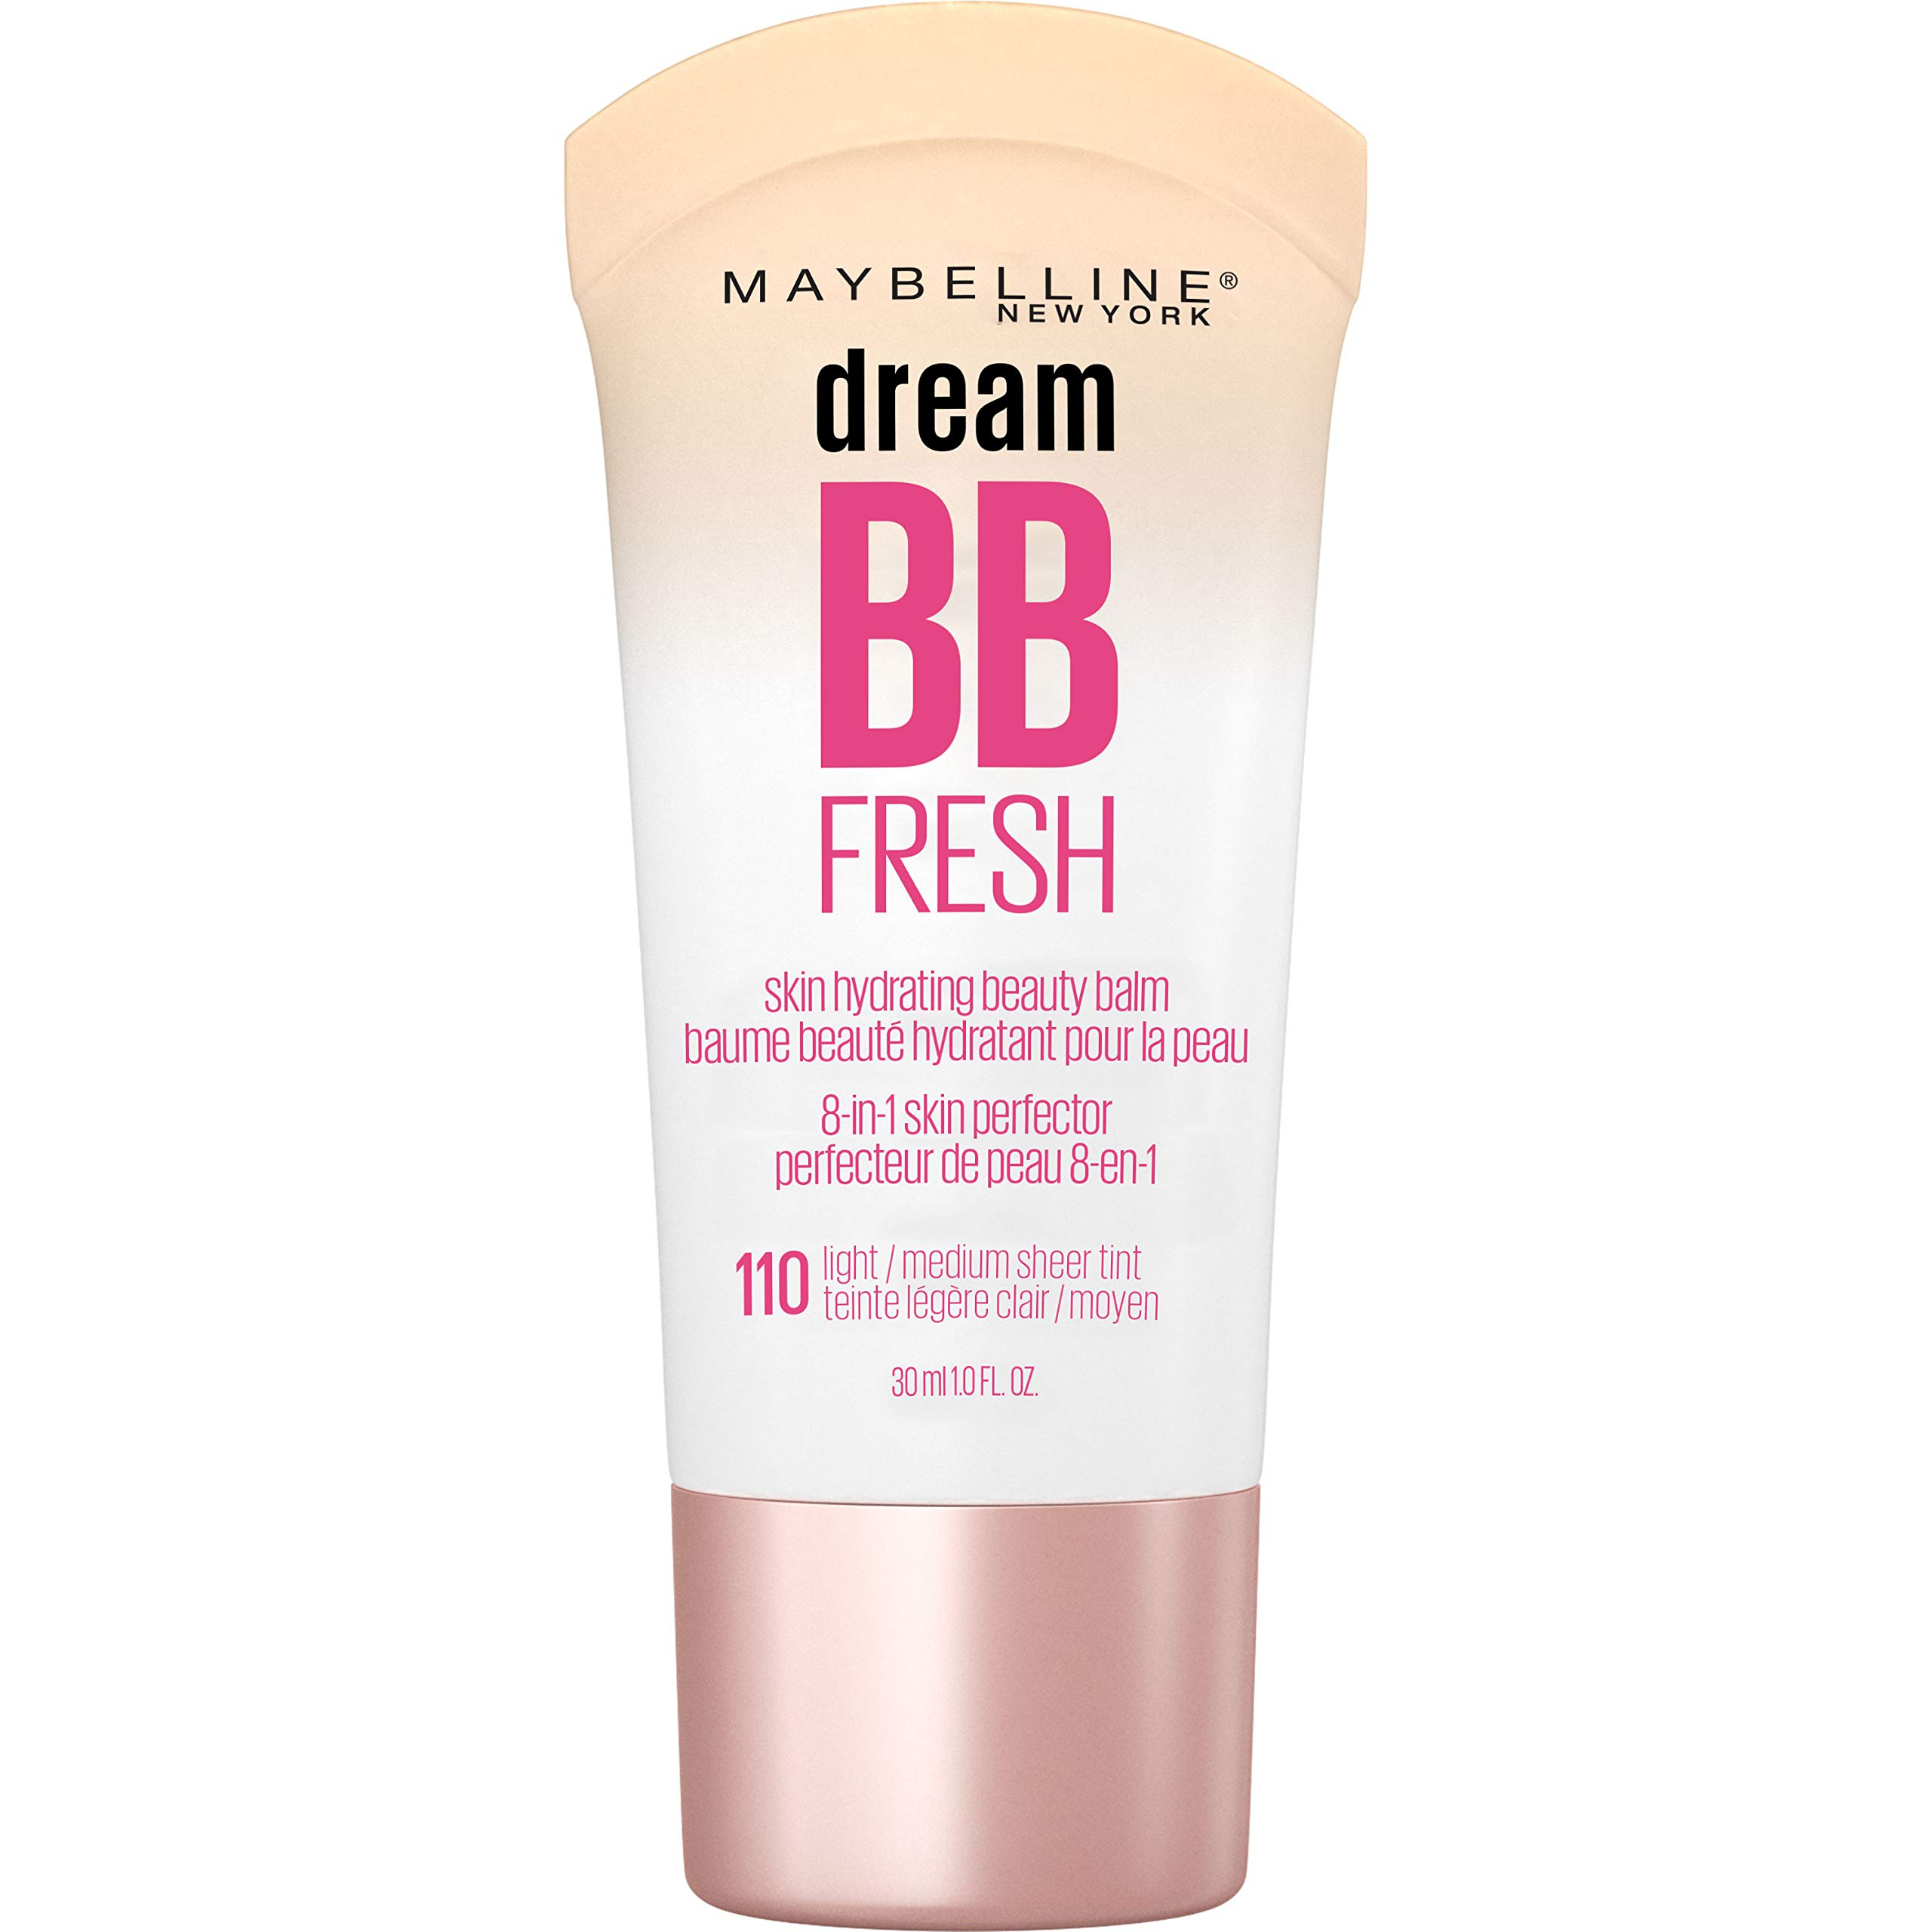 Maybelline Dream Fresh Skin Hydrating BB cream, 8-in-1 Skin Perfecting Beauty Balm with Broad Spectrum SPF 30, Sheer Tint Coverage, Oil-Free, Light/Medium, 1 Fl Oz